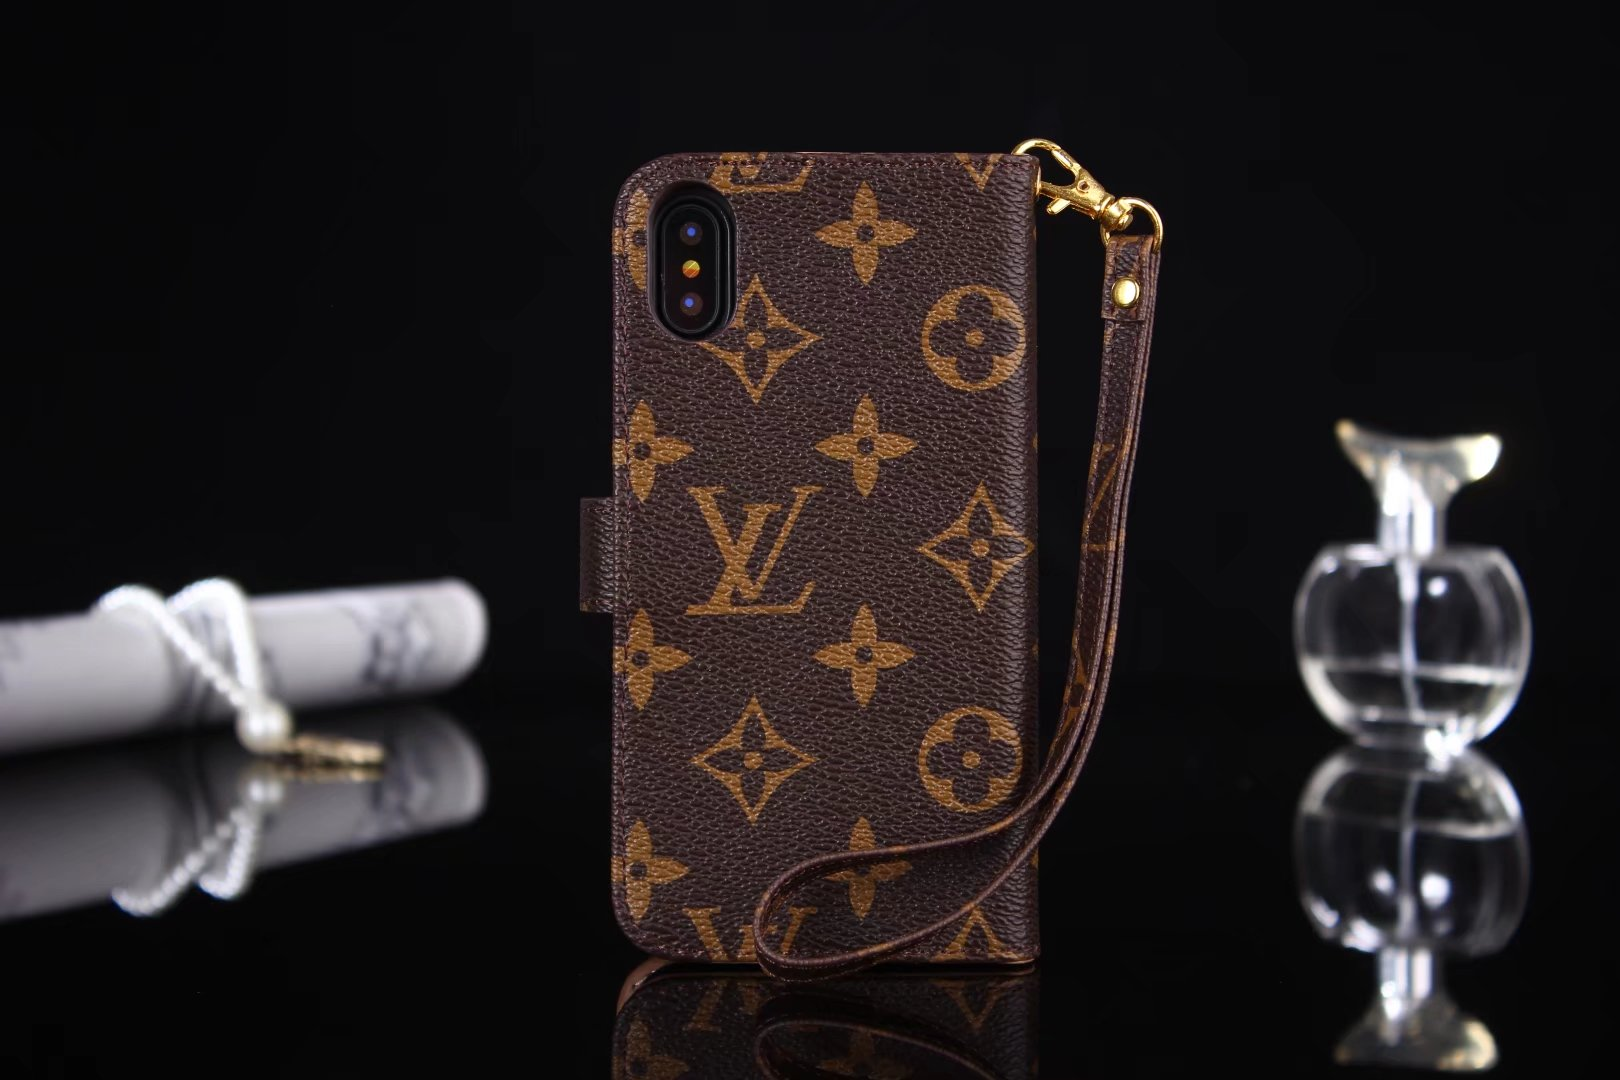 iphone schutzhülle schutzhülle iphone Louis Vuitton iphone X hüllen ledertasche iphone X apple iphone X lederhülle iphone X gehäuX reparatur gummi hülle hülle mit eigenem foto iphone caX foto